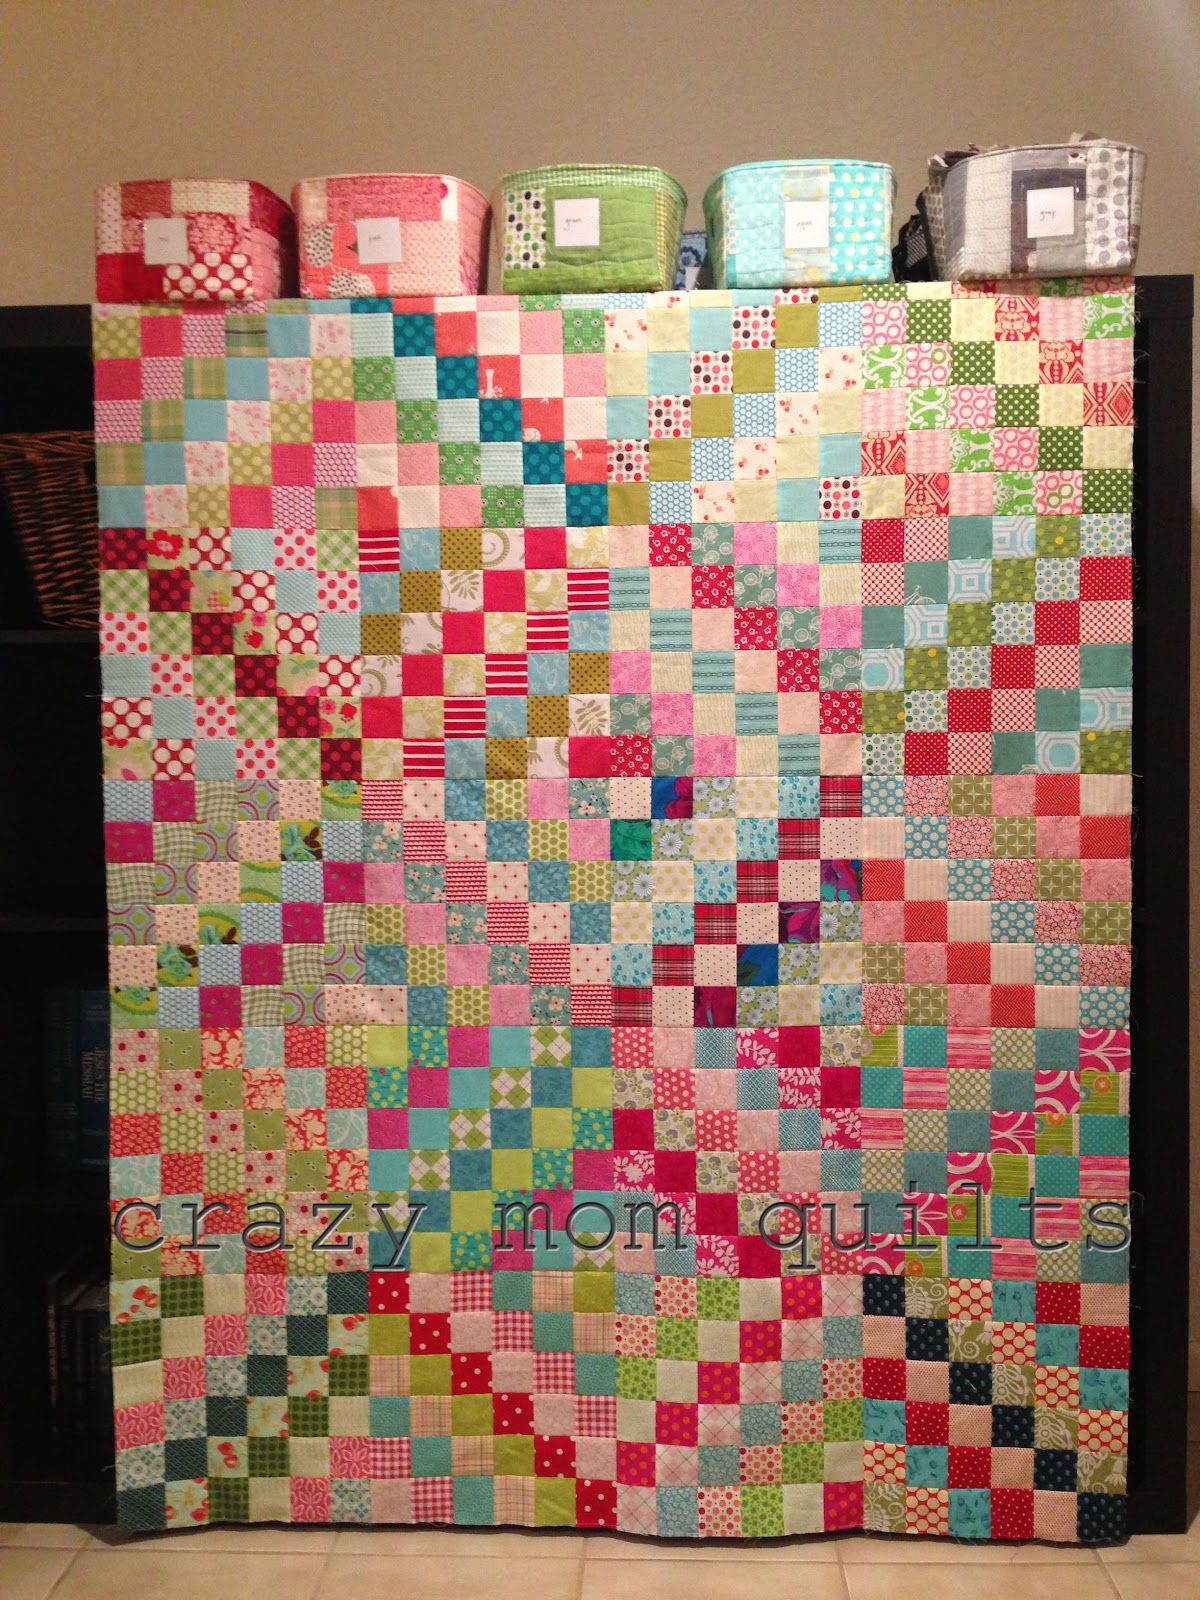 Crazy mom quilts chopped rhubarb quilt top for Scrap quilt